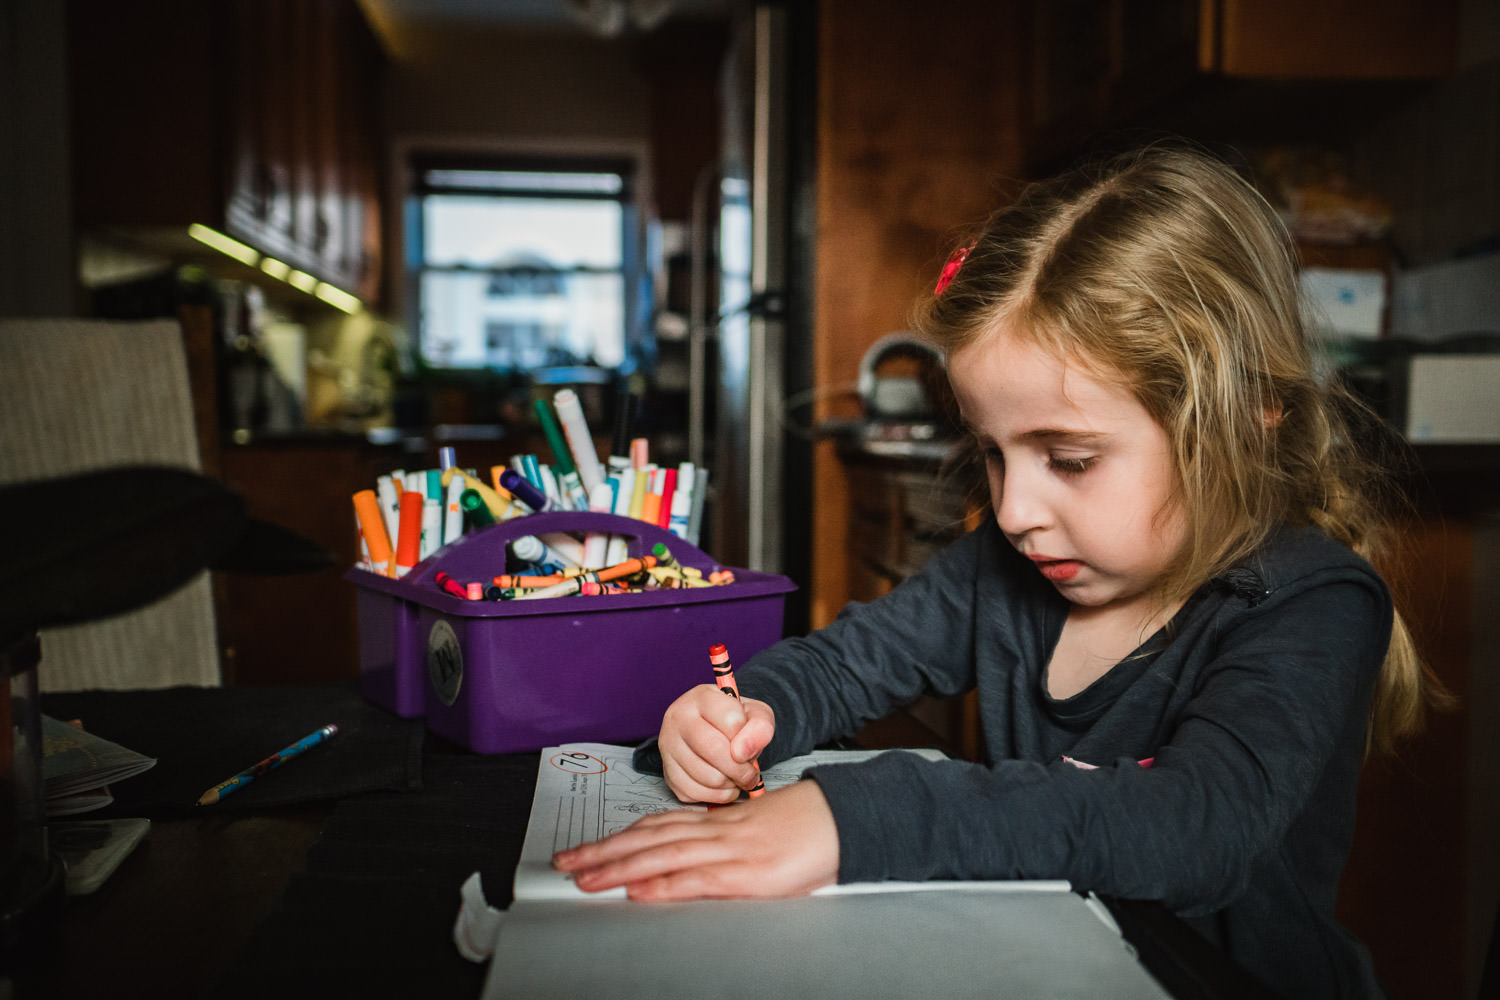 A little girl sits and does homework at her kitchen table.